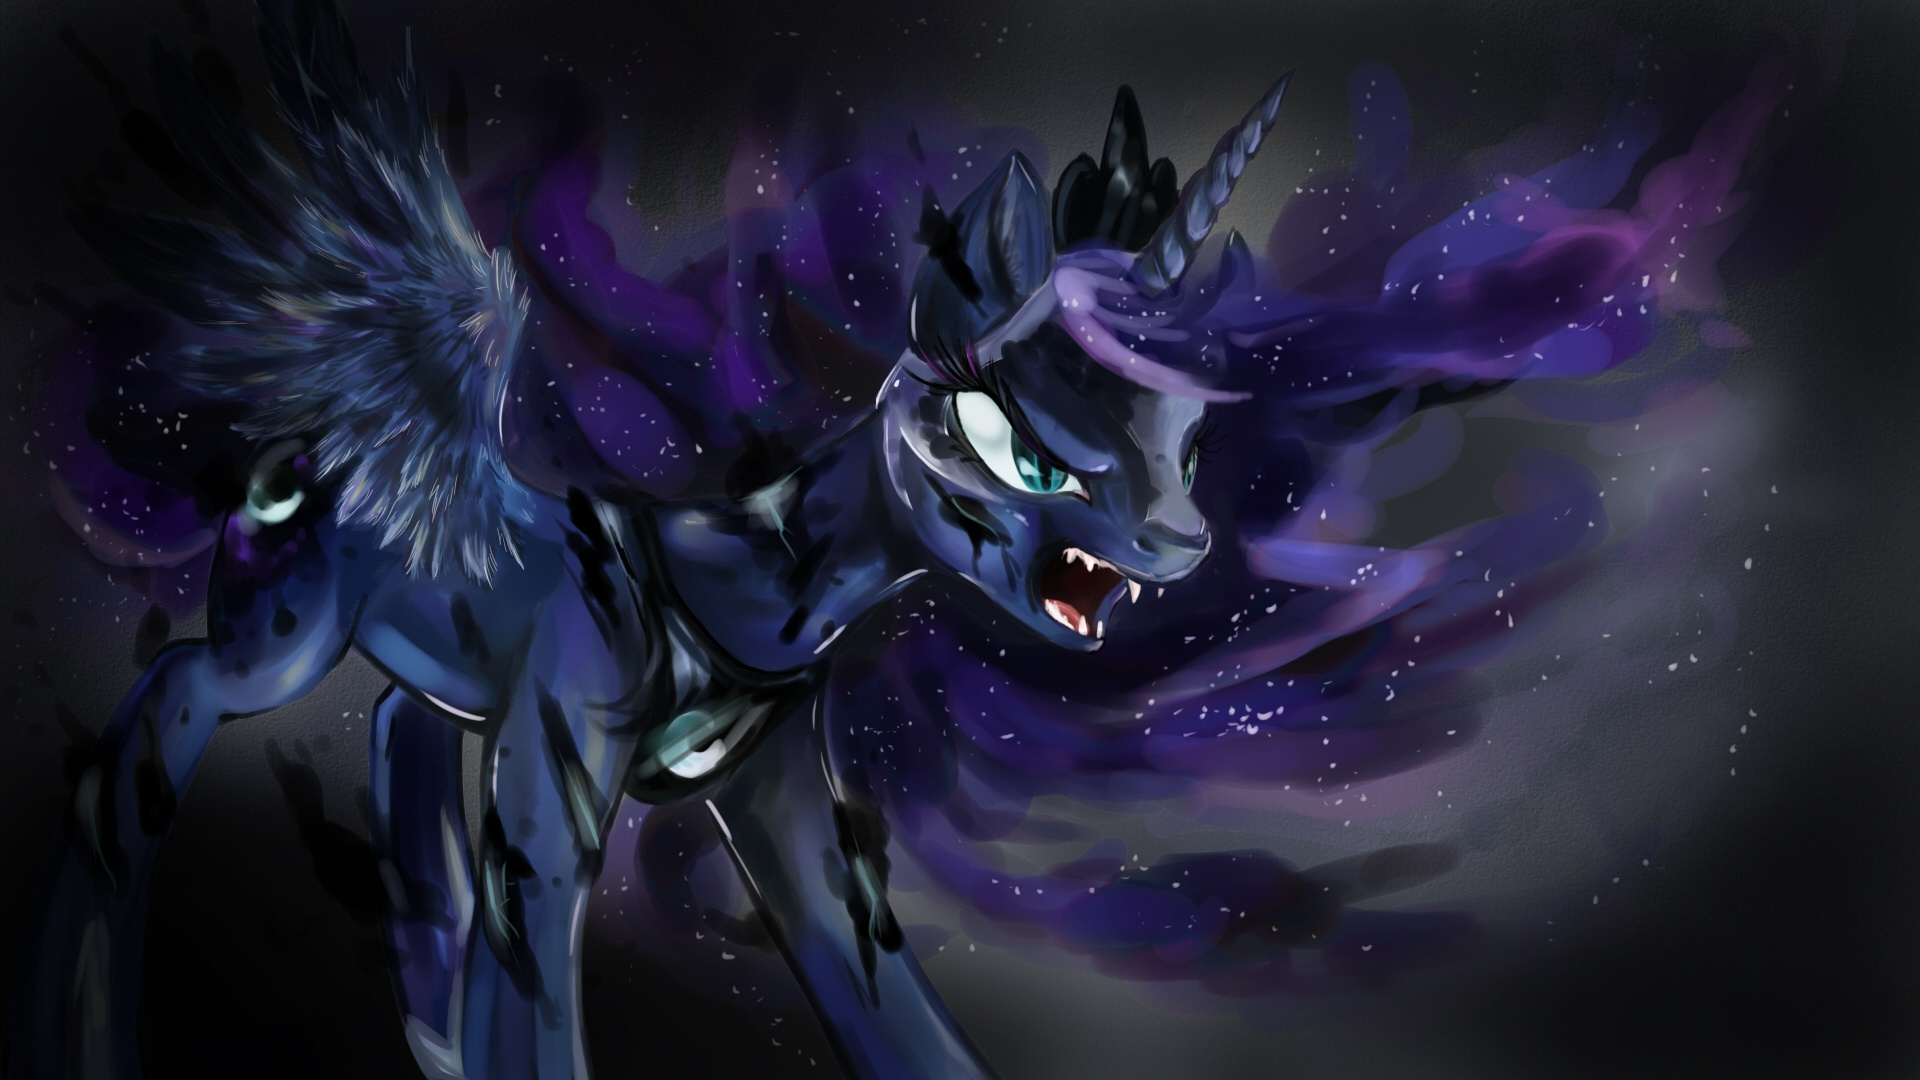 My Little Pony Coloring Pages Nightmare Moon : Image princess luna transforming into nightmare moon wallpaper